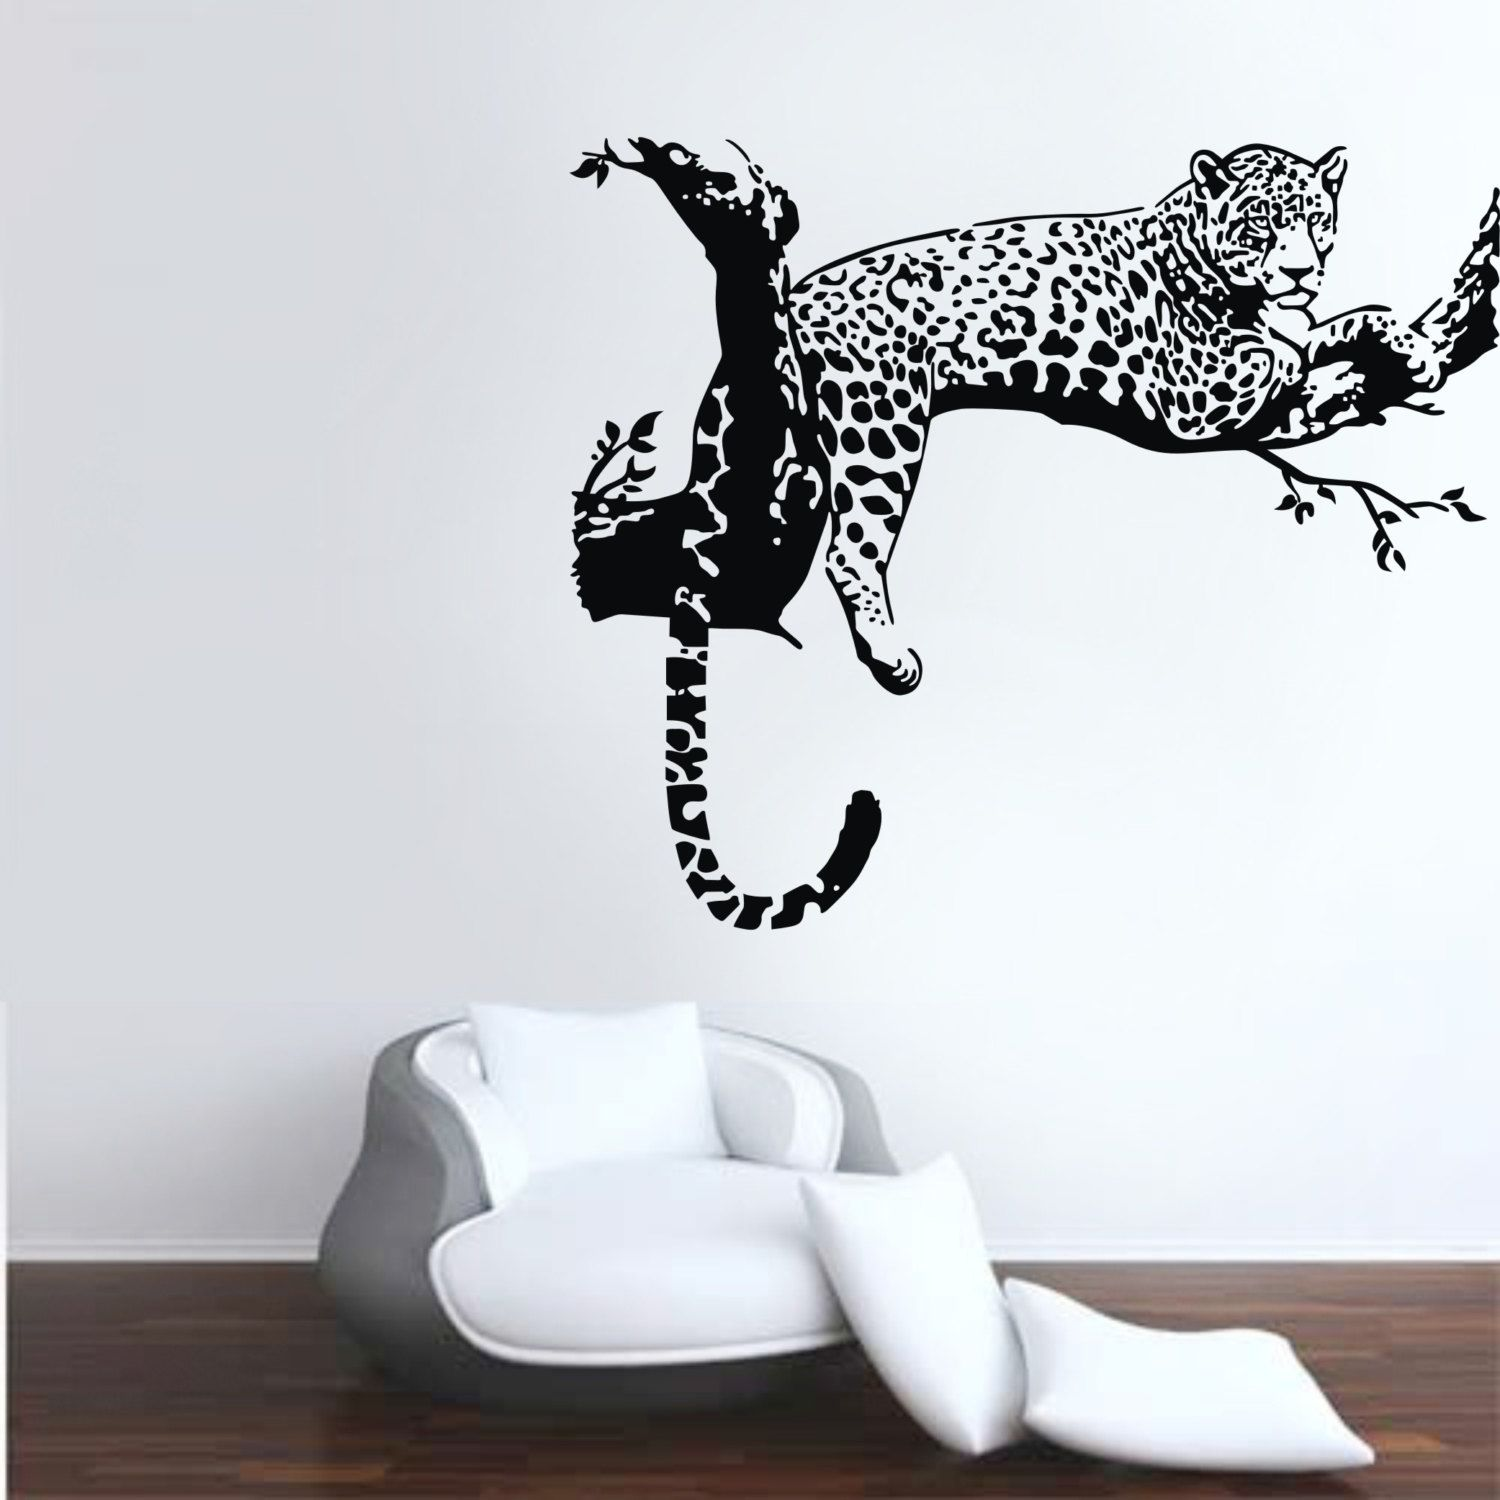 Large Leopard On The Branch Wall Decal Home Decor Animal Wall Decals Leopard Wall Decals Nursery Wall Decals